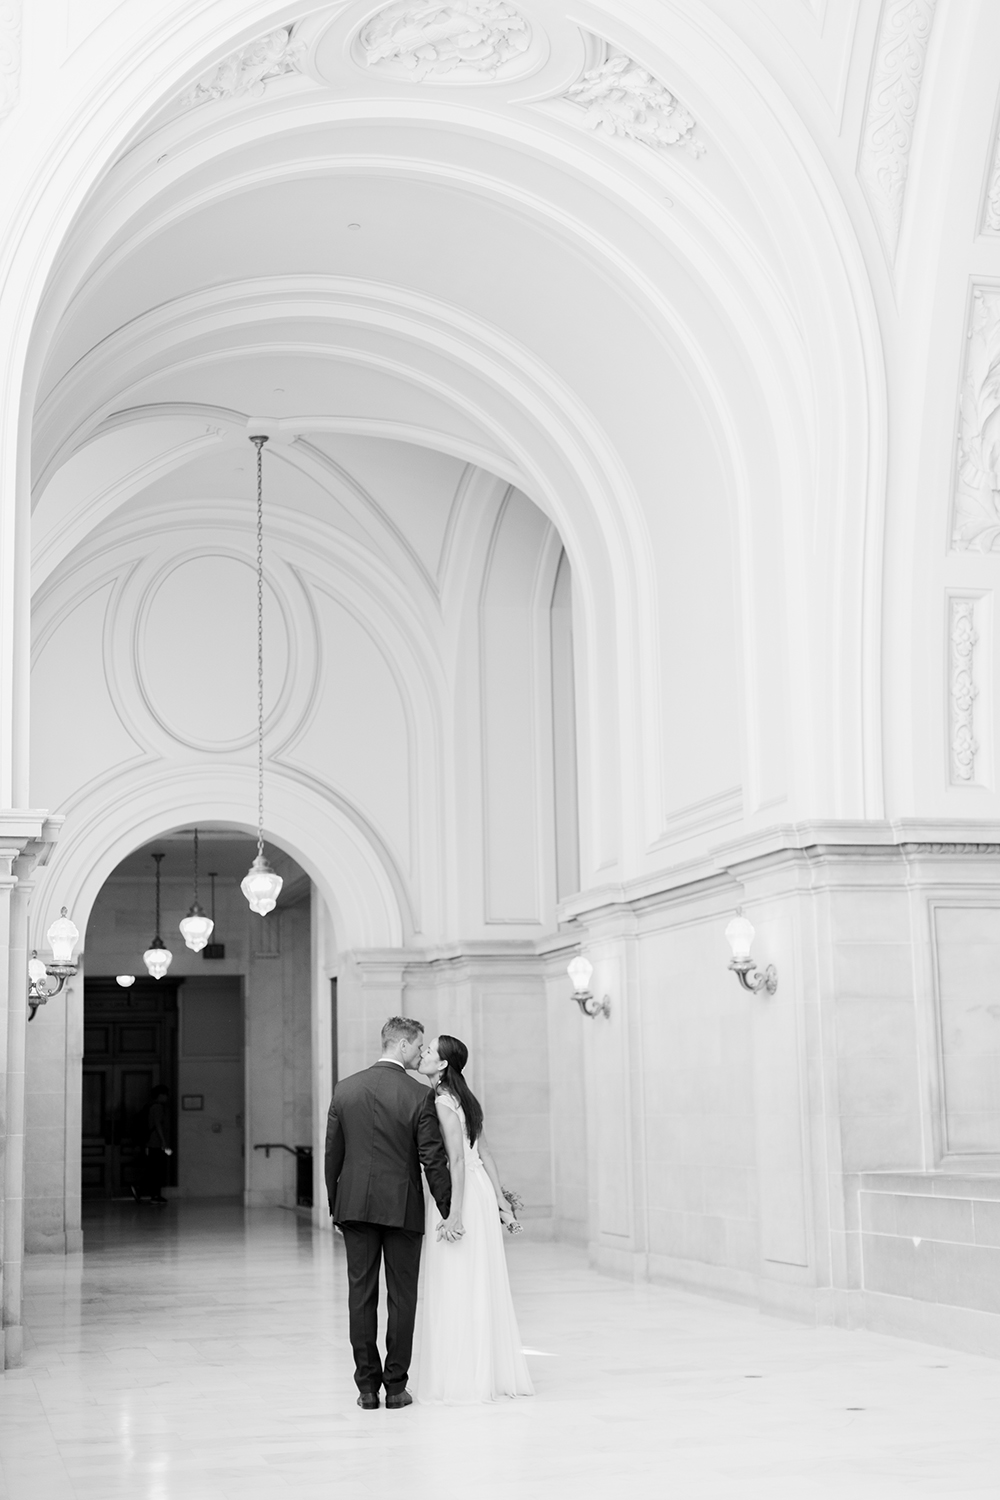 Classic portraits of bride and groom during their wedding in San Francisco City Hall.